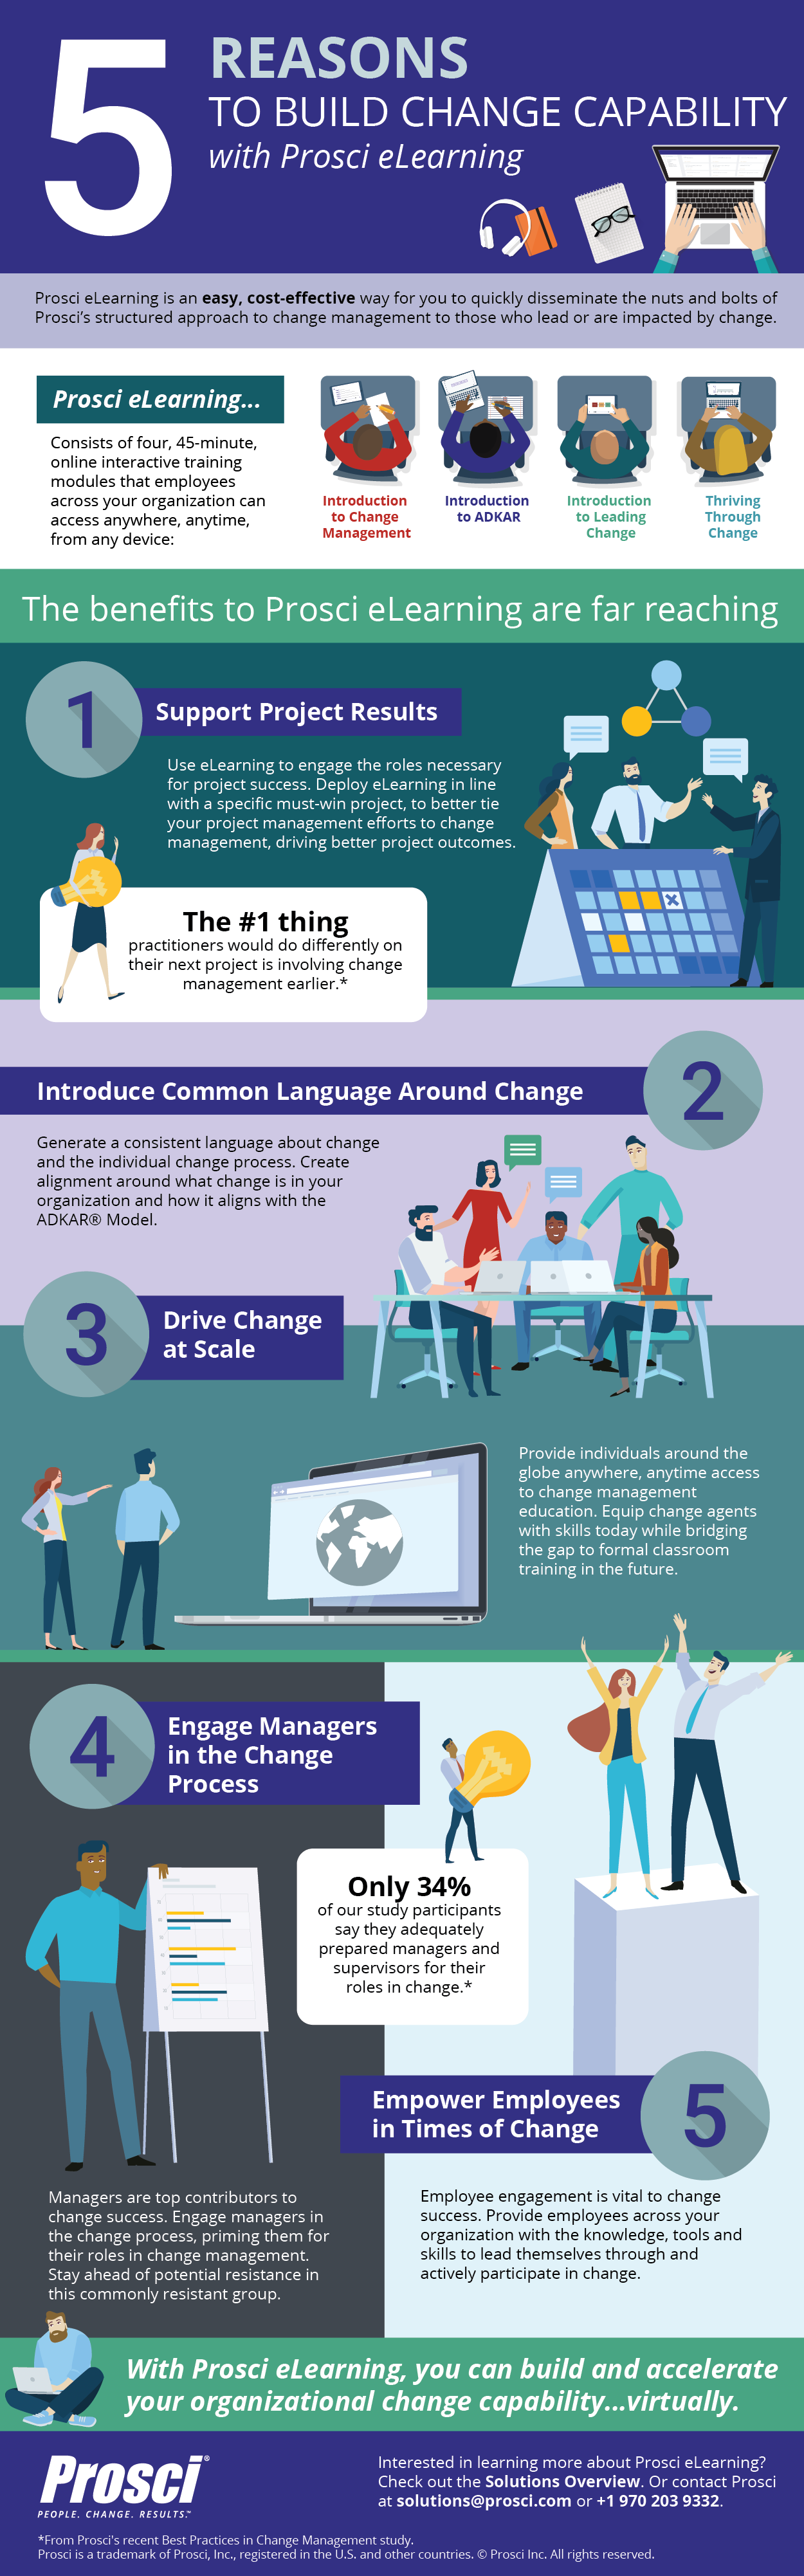 Prosci-eLearning-Infographic